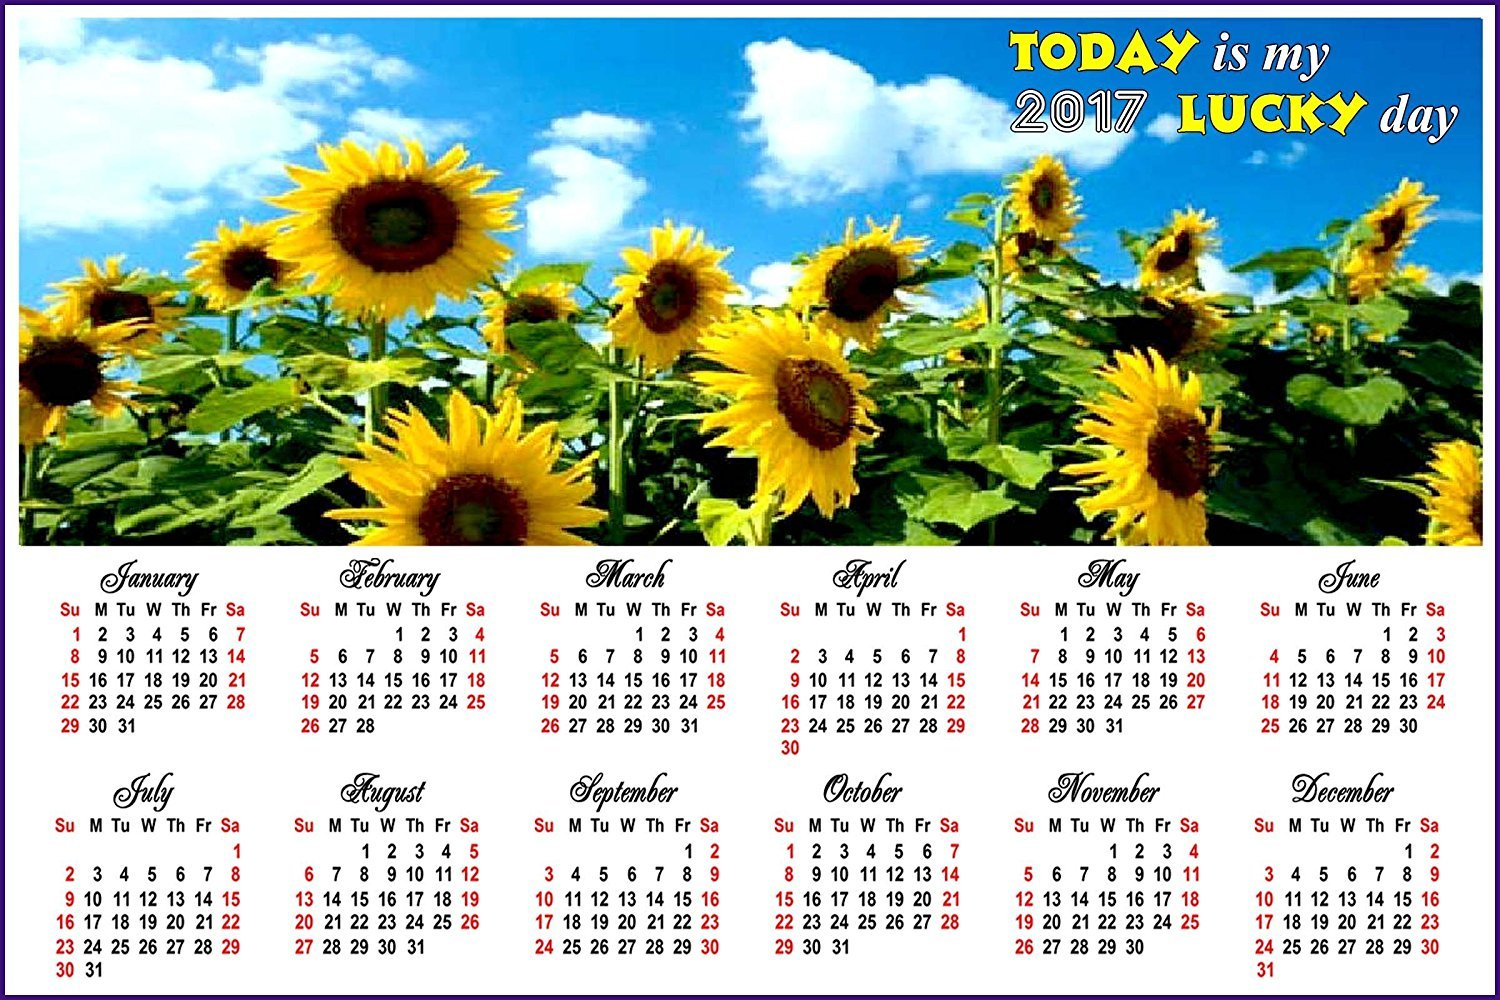 2017 Magnetic Calendar - Calendar Magnets - Today is my Lucky Day - Edition #5